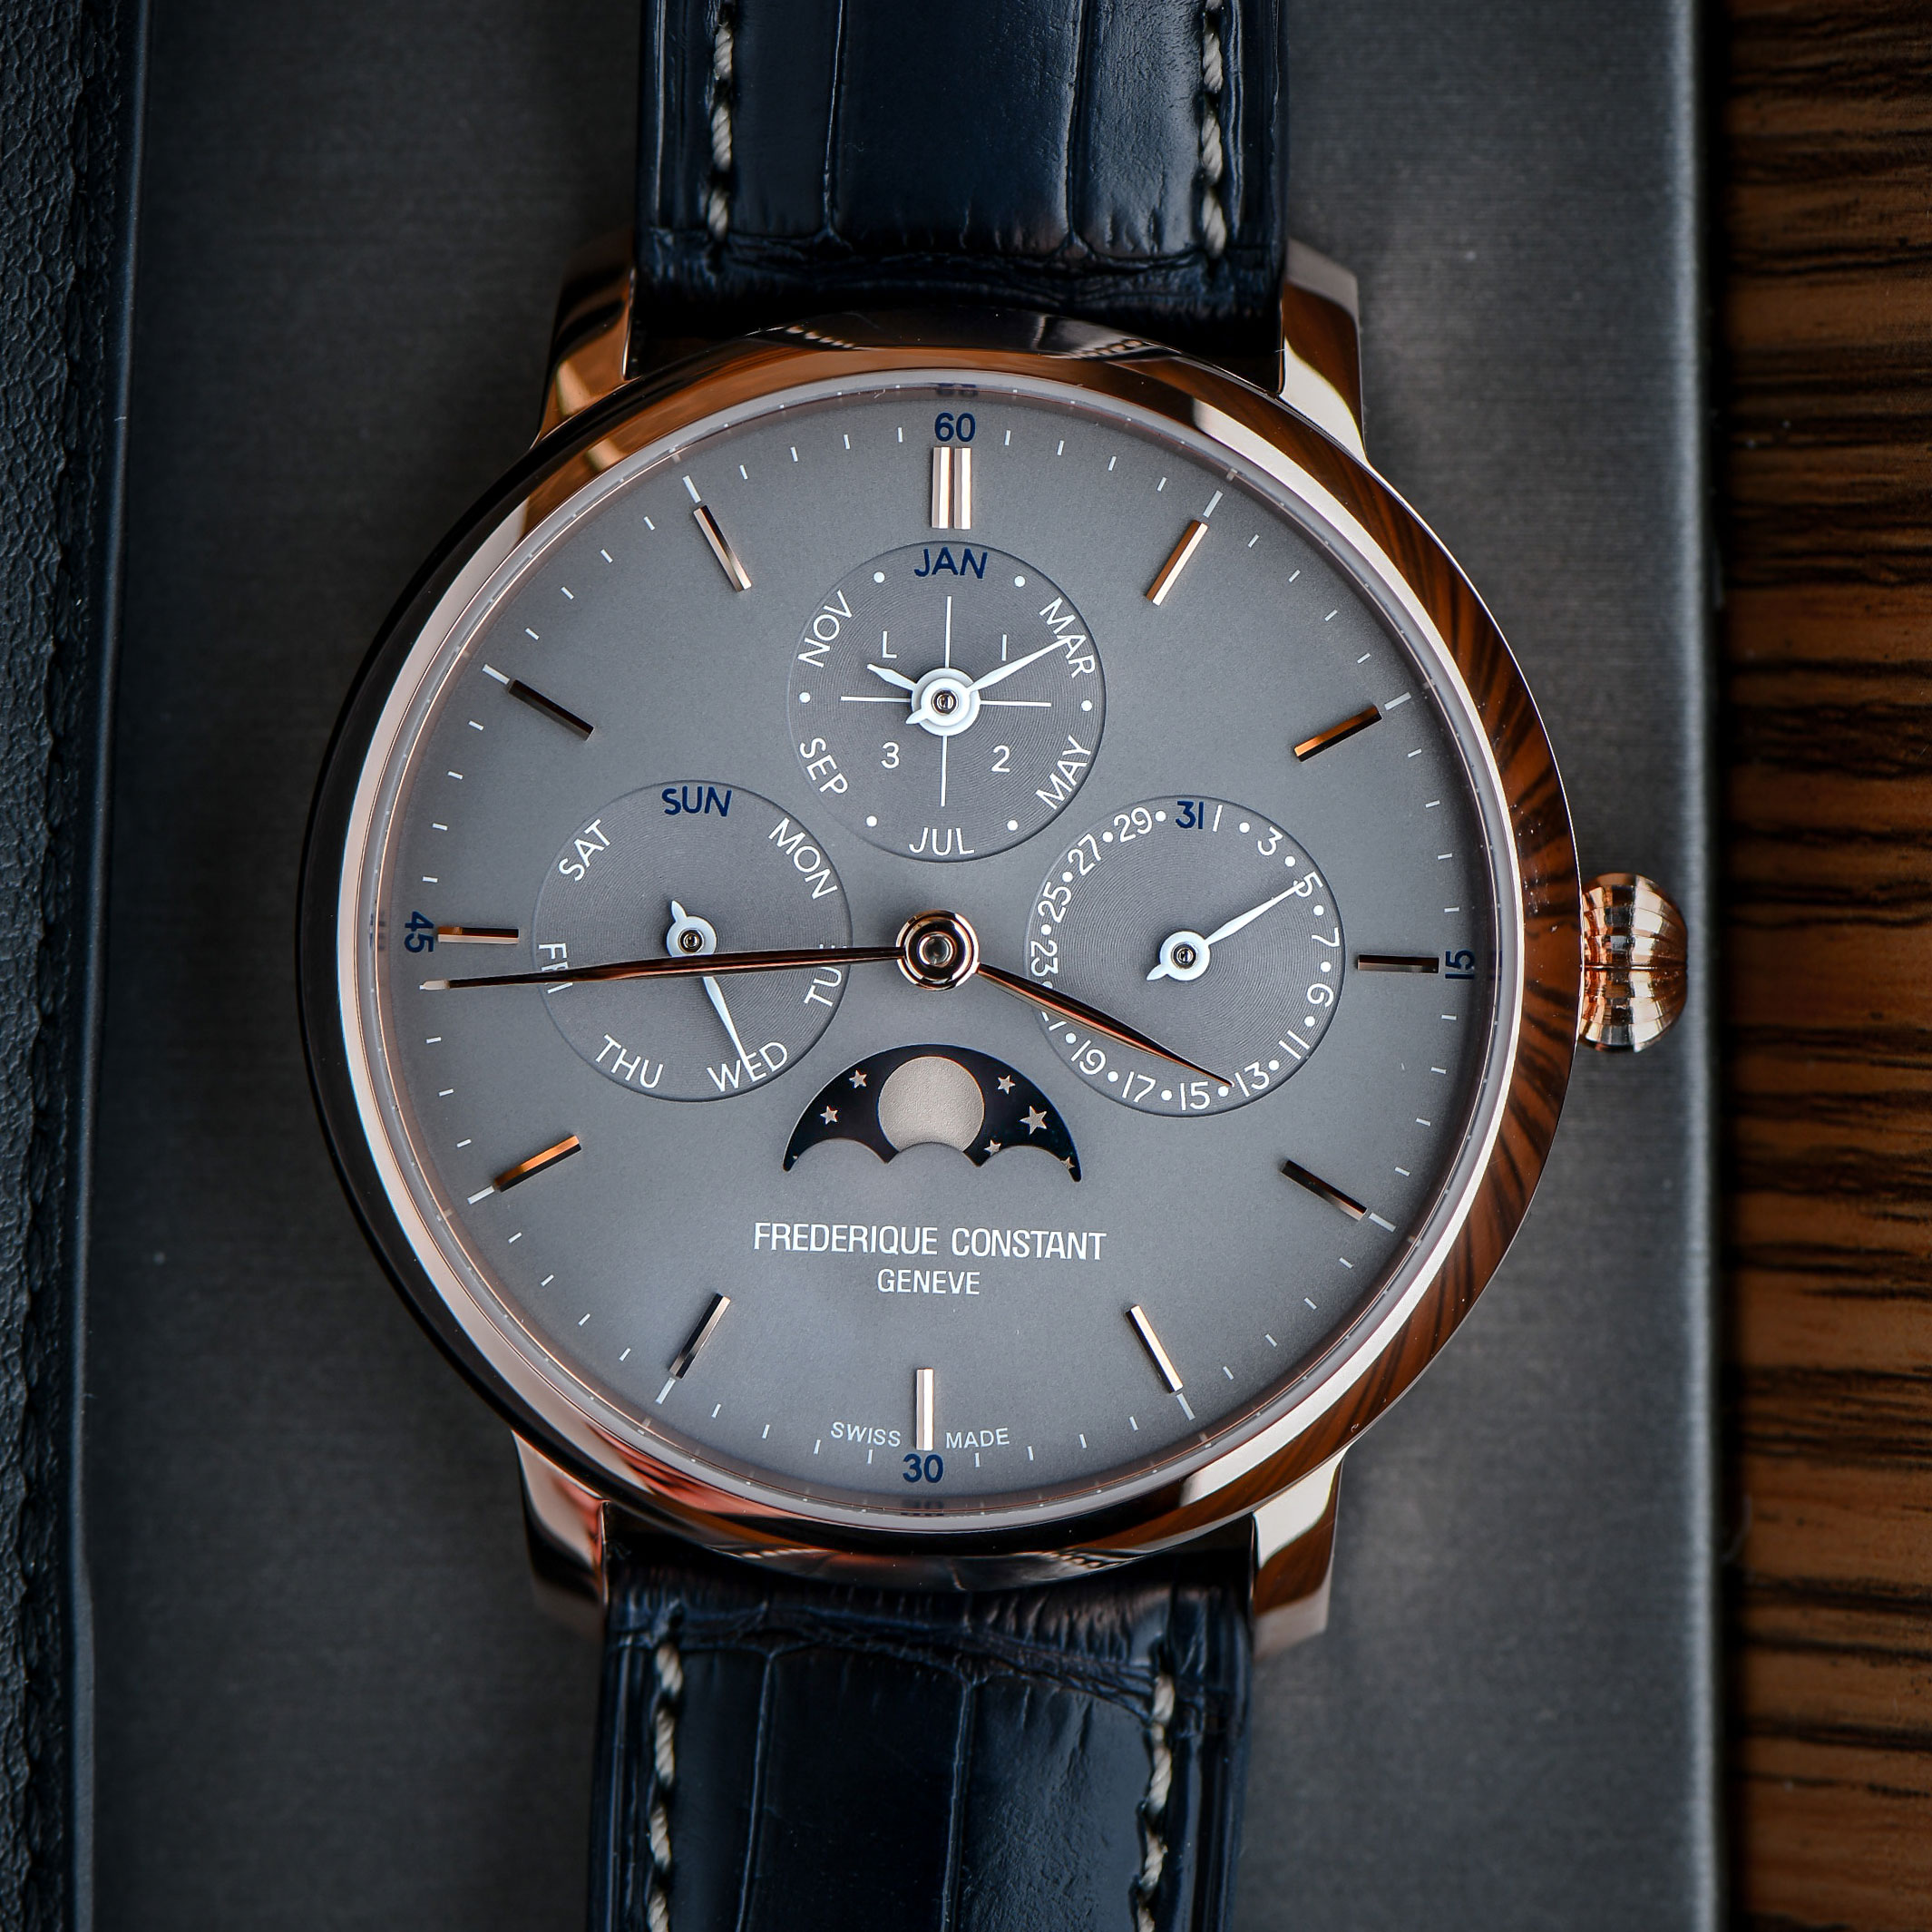 Frederique Constant Manufacture Perpetual Calendar Introduces New Gray Dials